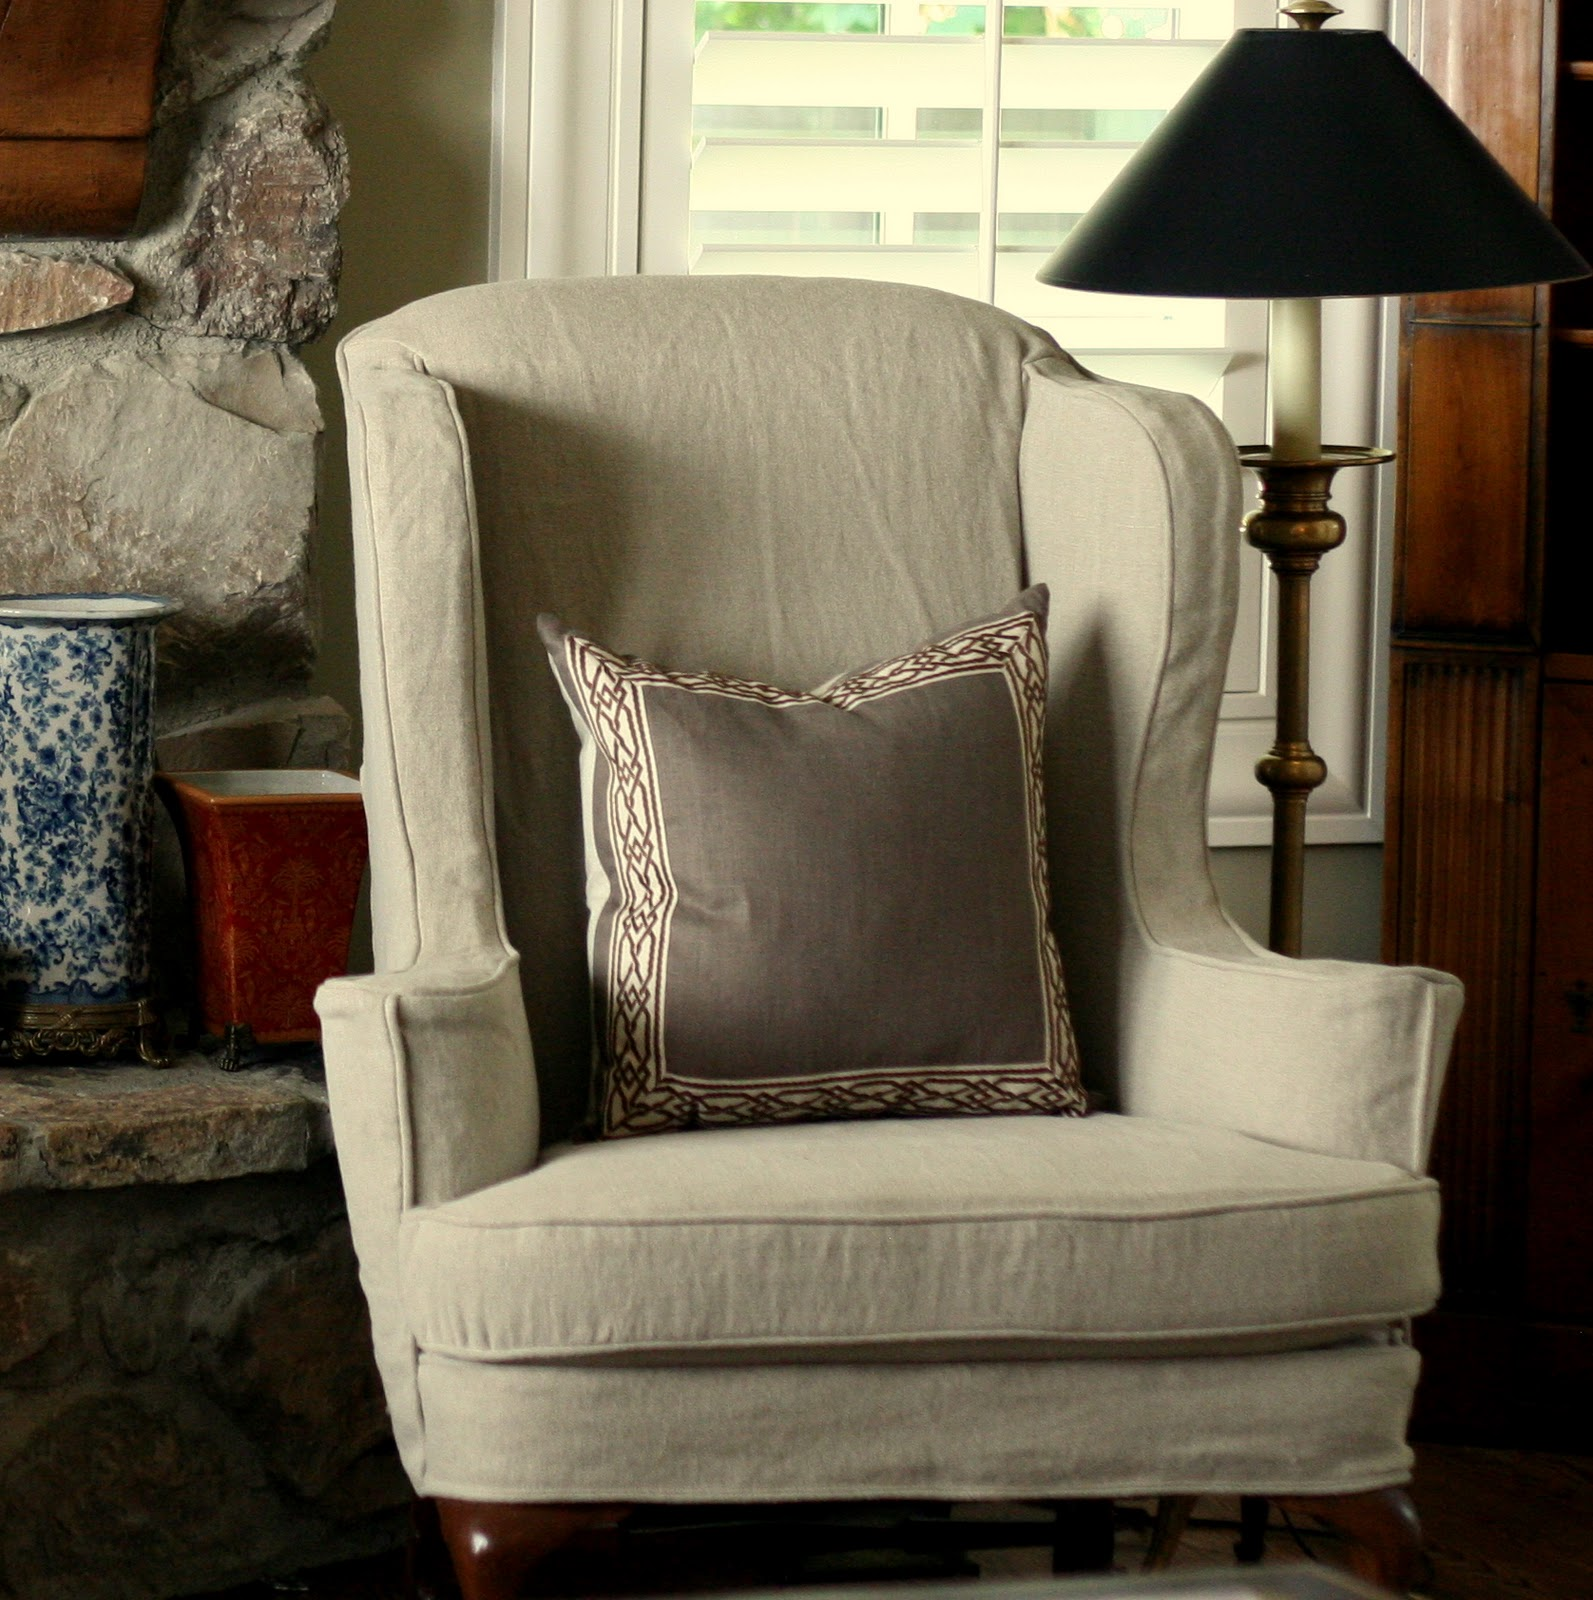 Slip Cover Chairs Graco Blossom High Chair Replacement Custom Slipcovers By Shelley Tan Linen Wingbacks